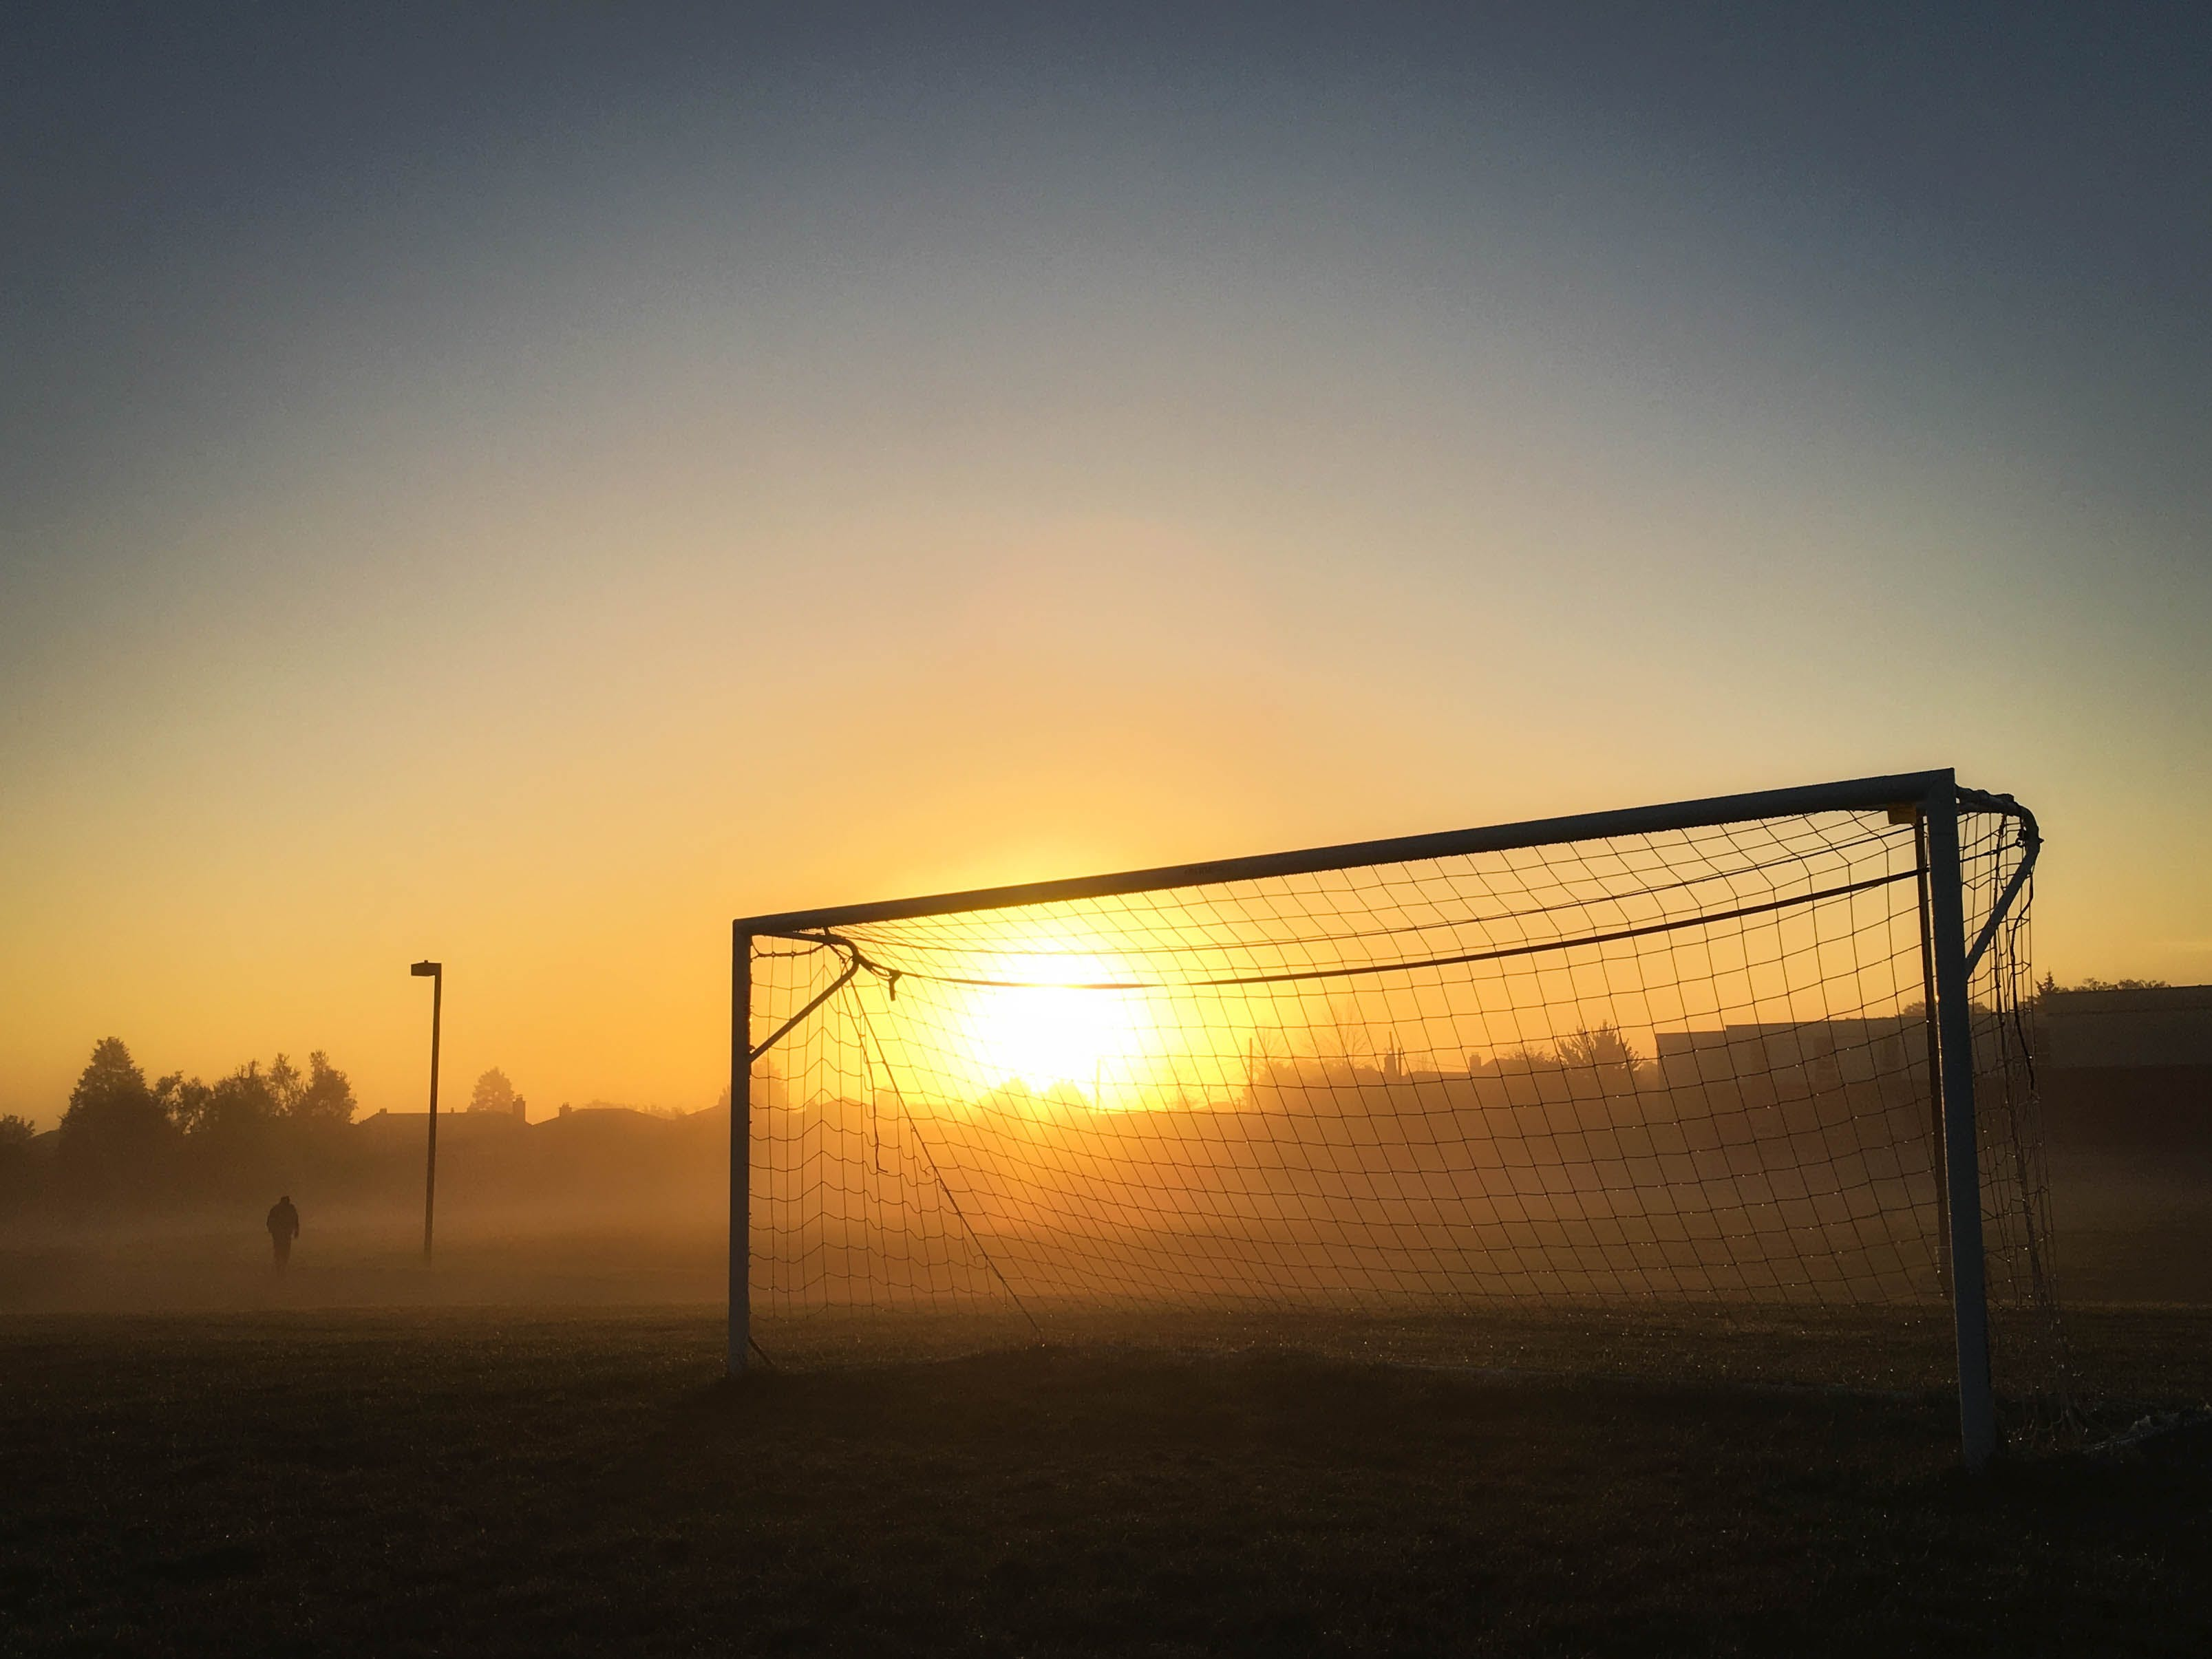 Person Jogging Near Soccer Goal during Sunrise